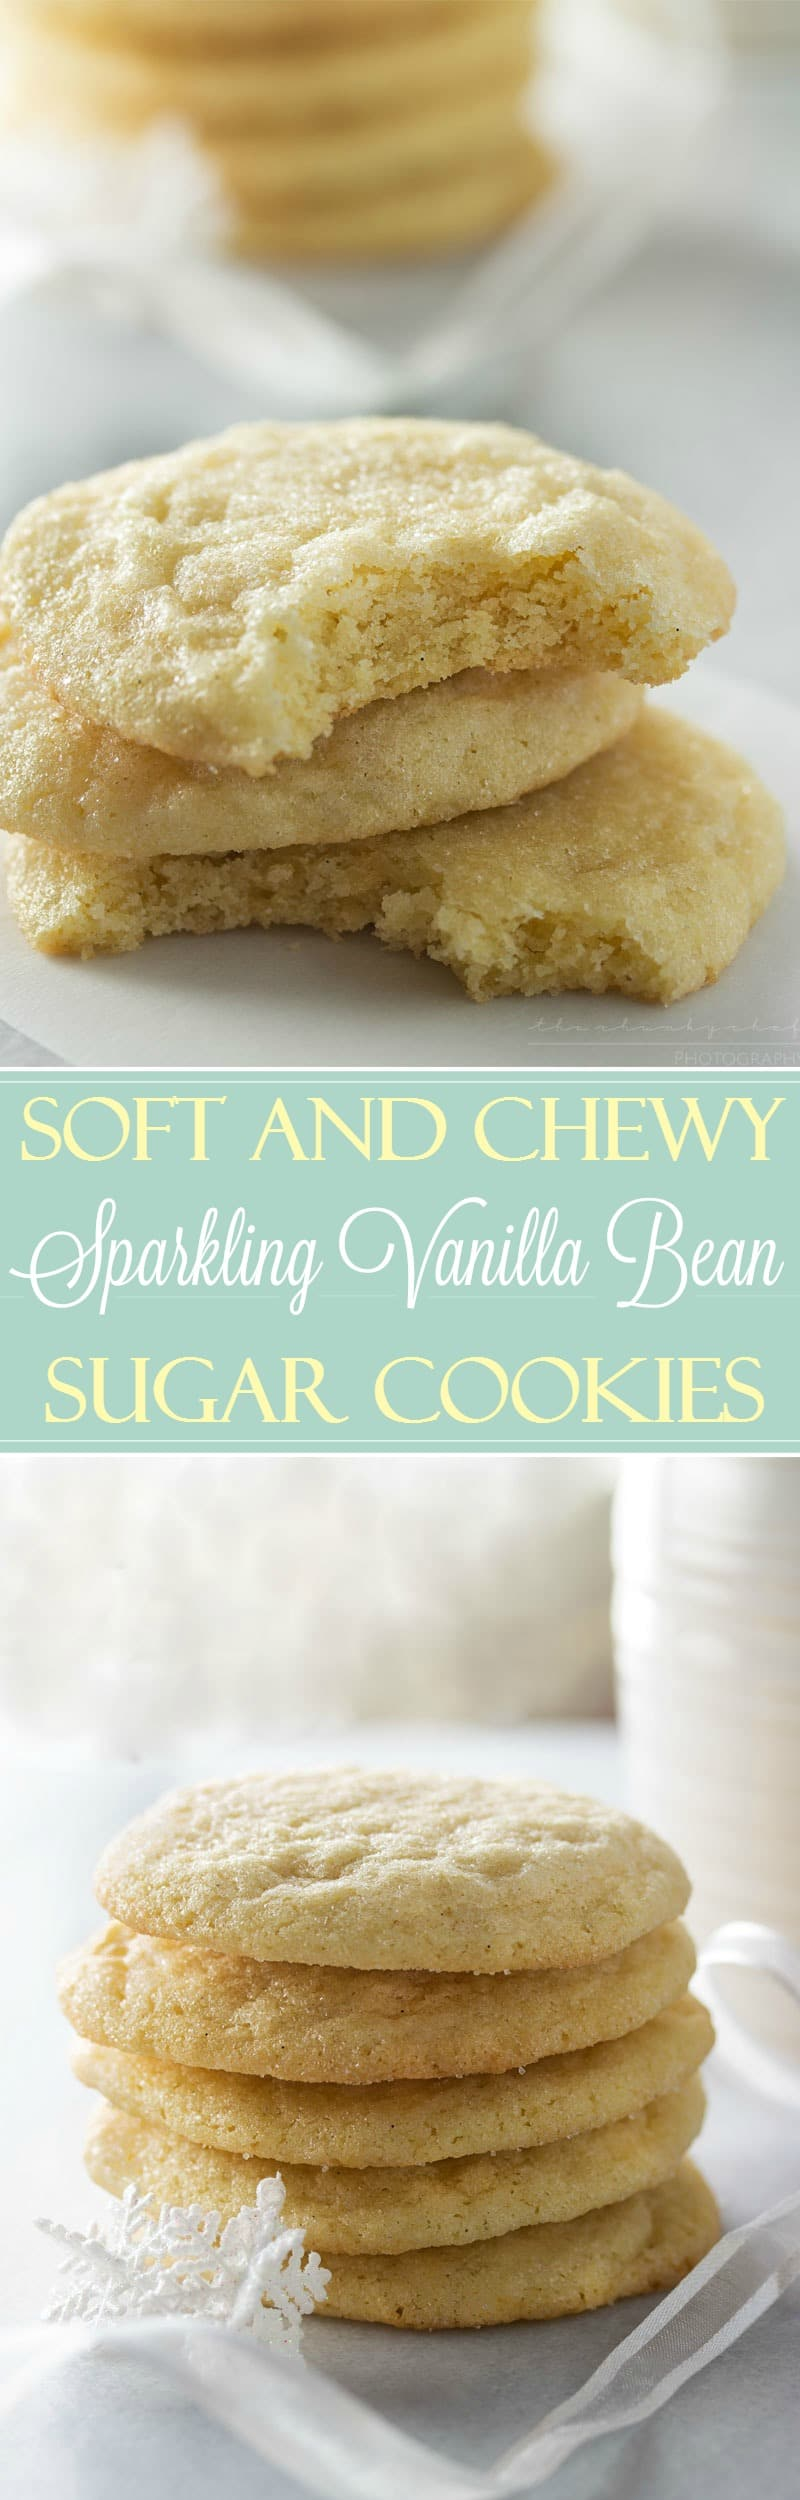 Soft Vanilla Bean Sugar Cookies | These vanilla bean sugar cookies are rolled in sugar for a sparkling appearance and a soft, light and chewy texture that will make these your new favorite!